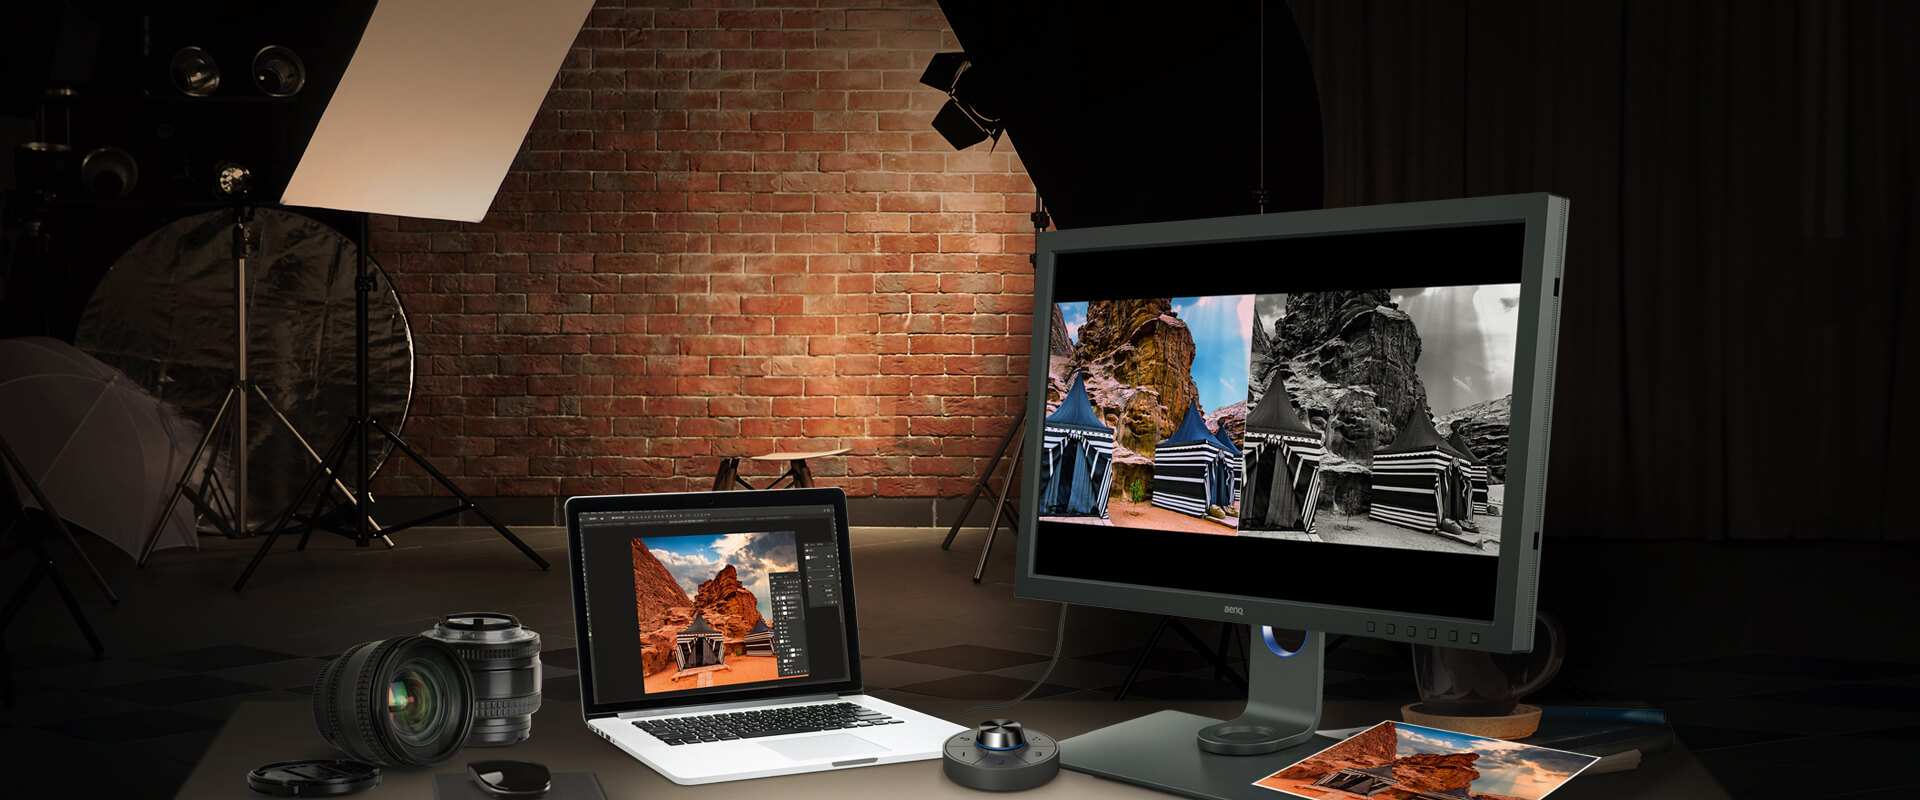 benq professional productivity and efficiency boosts simplify photo retouching and video editing